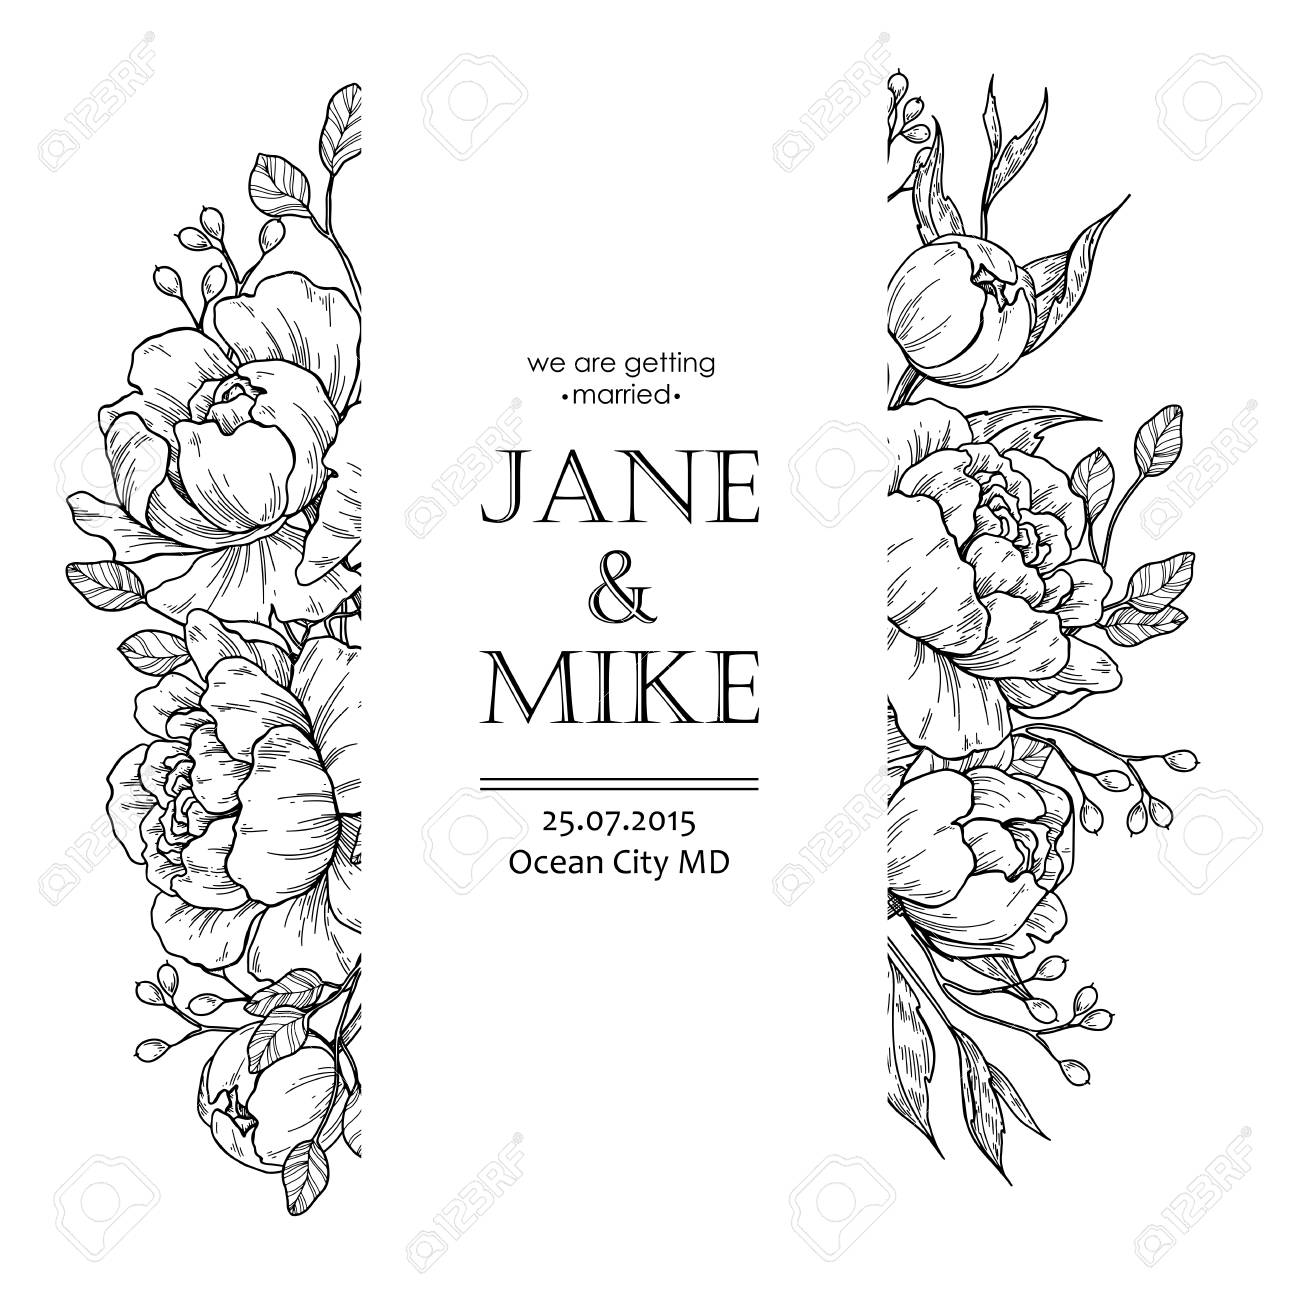 Flower vintage border. Vector peony and roses botanical drawing. Isolated sketch. Engraved bouquet with leaves and berries. Wedding invitation, label template, anniversary card design - 98861560